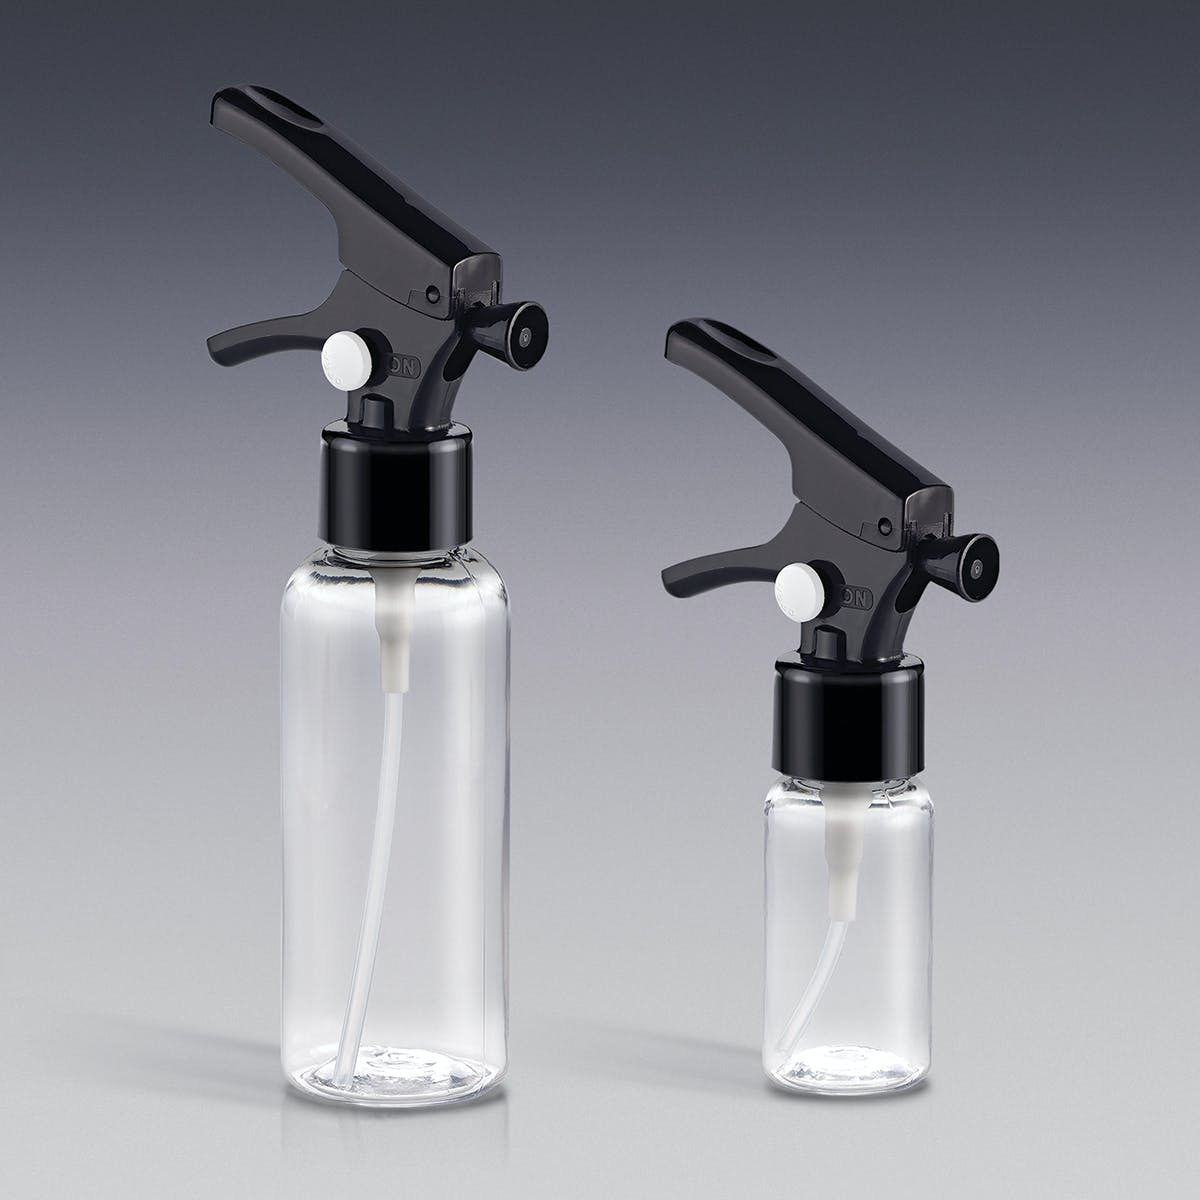 Mini Clear Bottles with Locking Trigger Sprayers Plastic bottle sold by Qosmedix